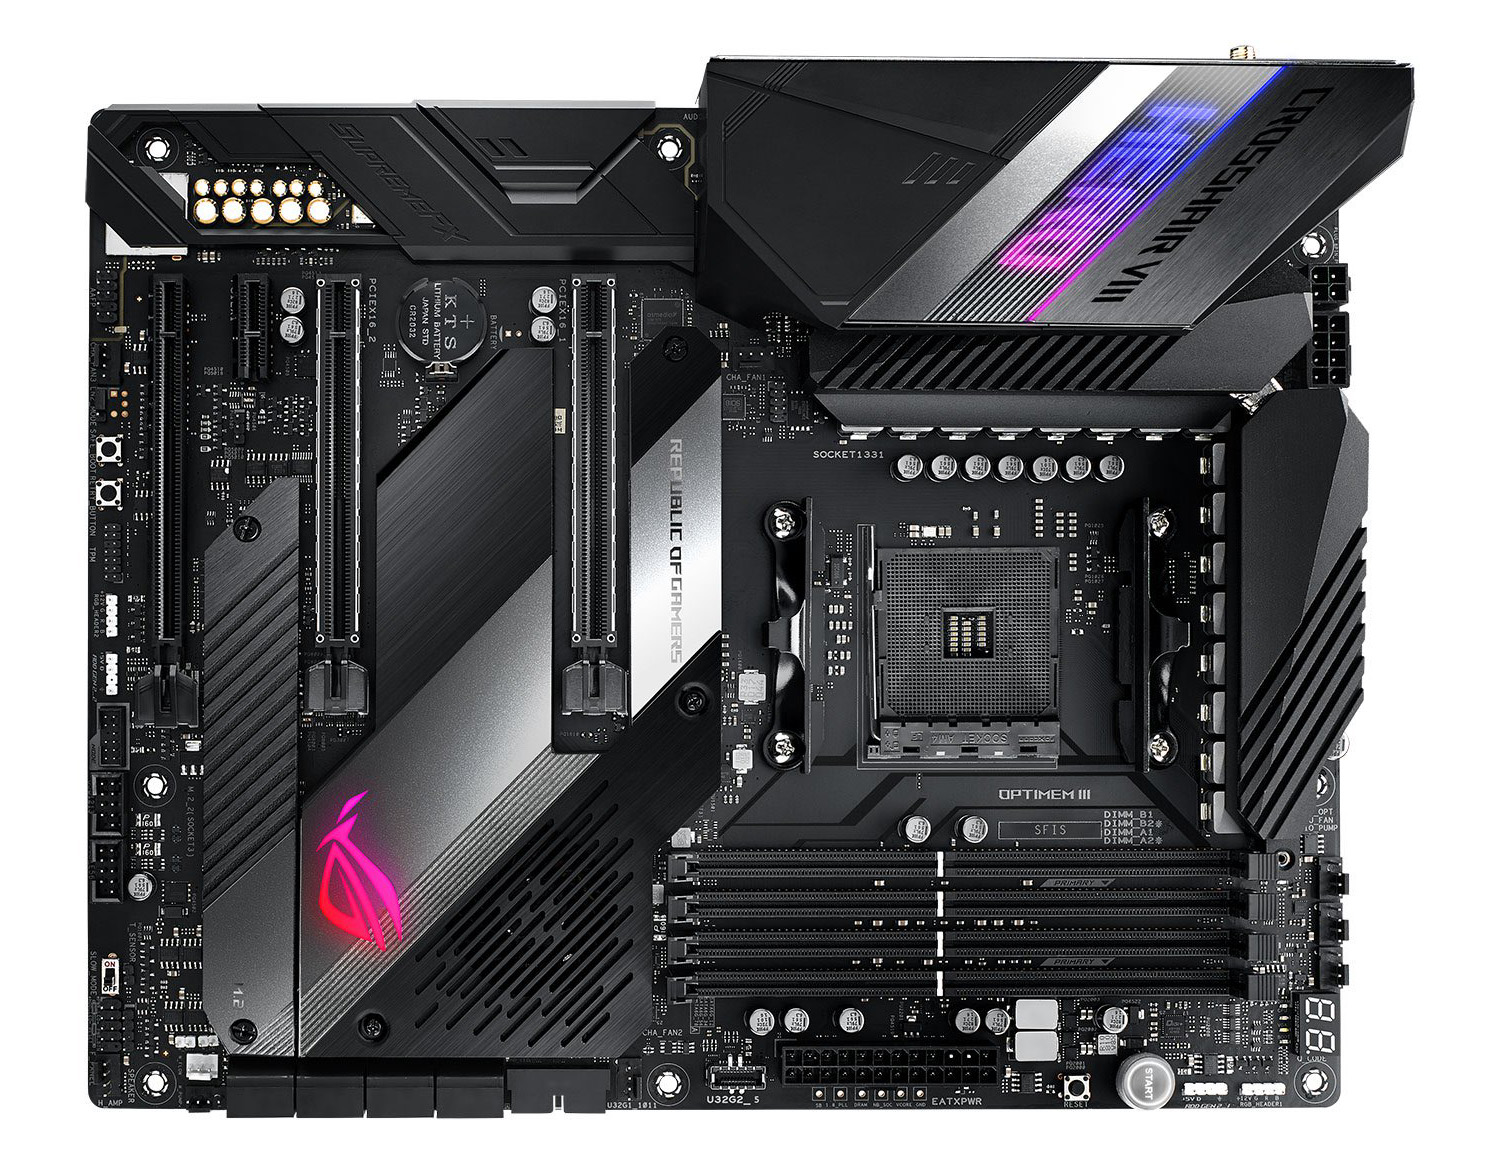 Review Asus Rog Crosshair Viii Hero Wifi Mainboard Hexus Net